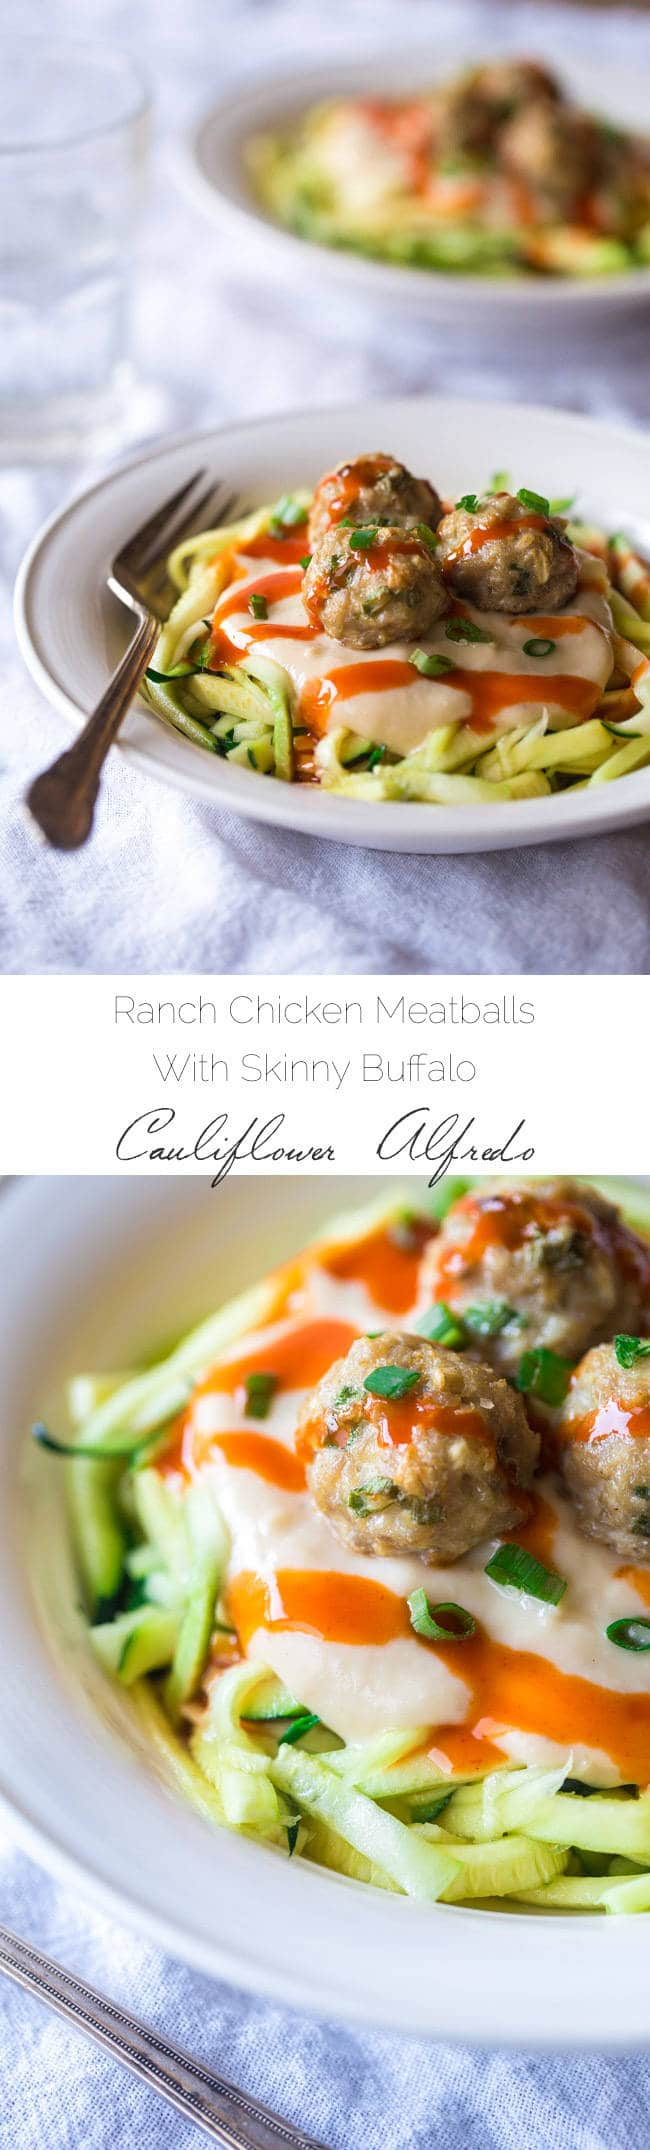 Buffalo Chicken Meatballs with Skinny Buffalo Cauliflower Alfredo - A Dinner perfect for Game Day that is SO healthy and easy! You would never know it's gluten free, low carb and PACKED with protein! | Foodfaithfitness.com | #recipe